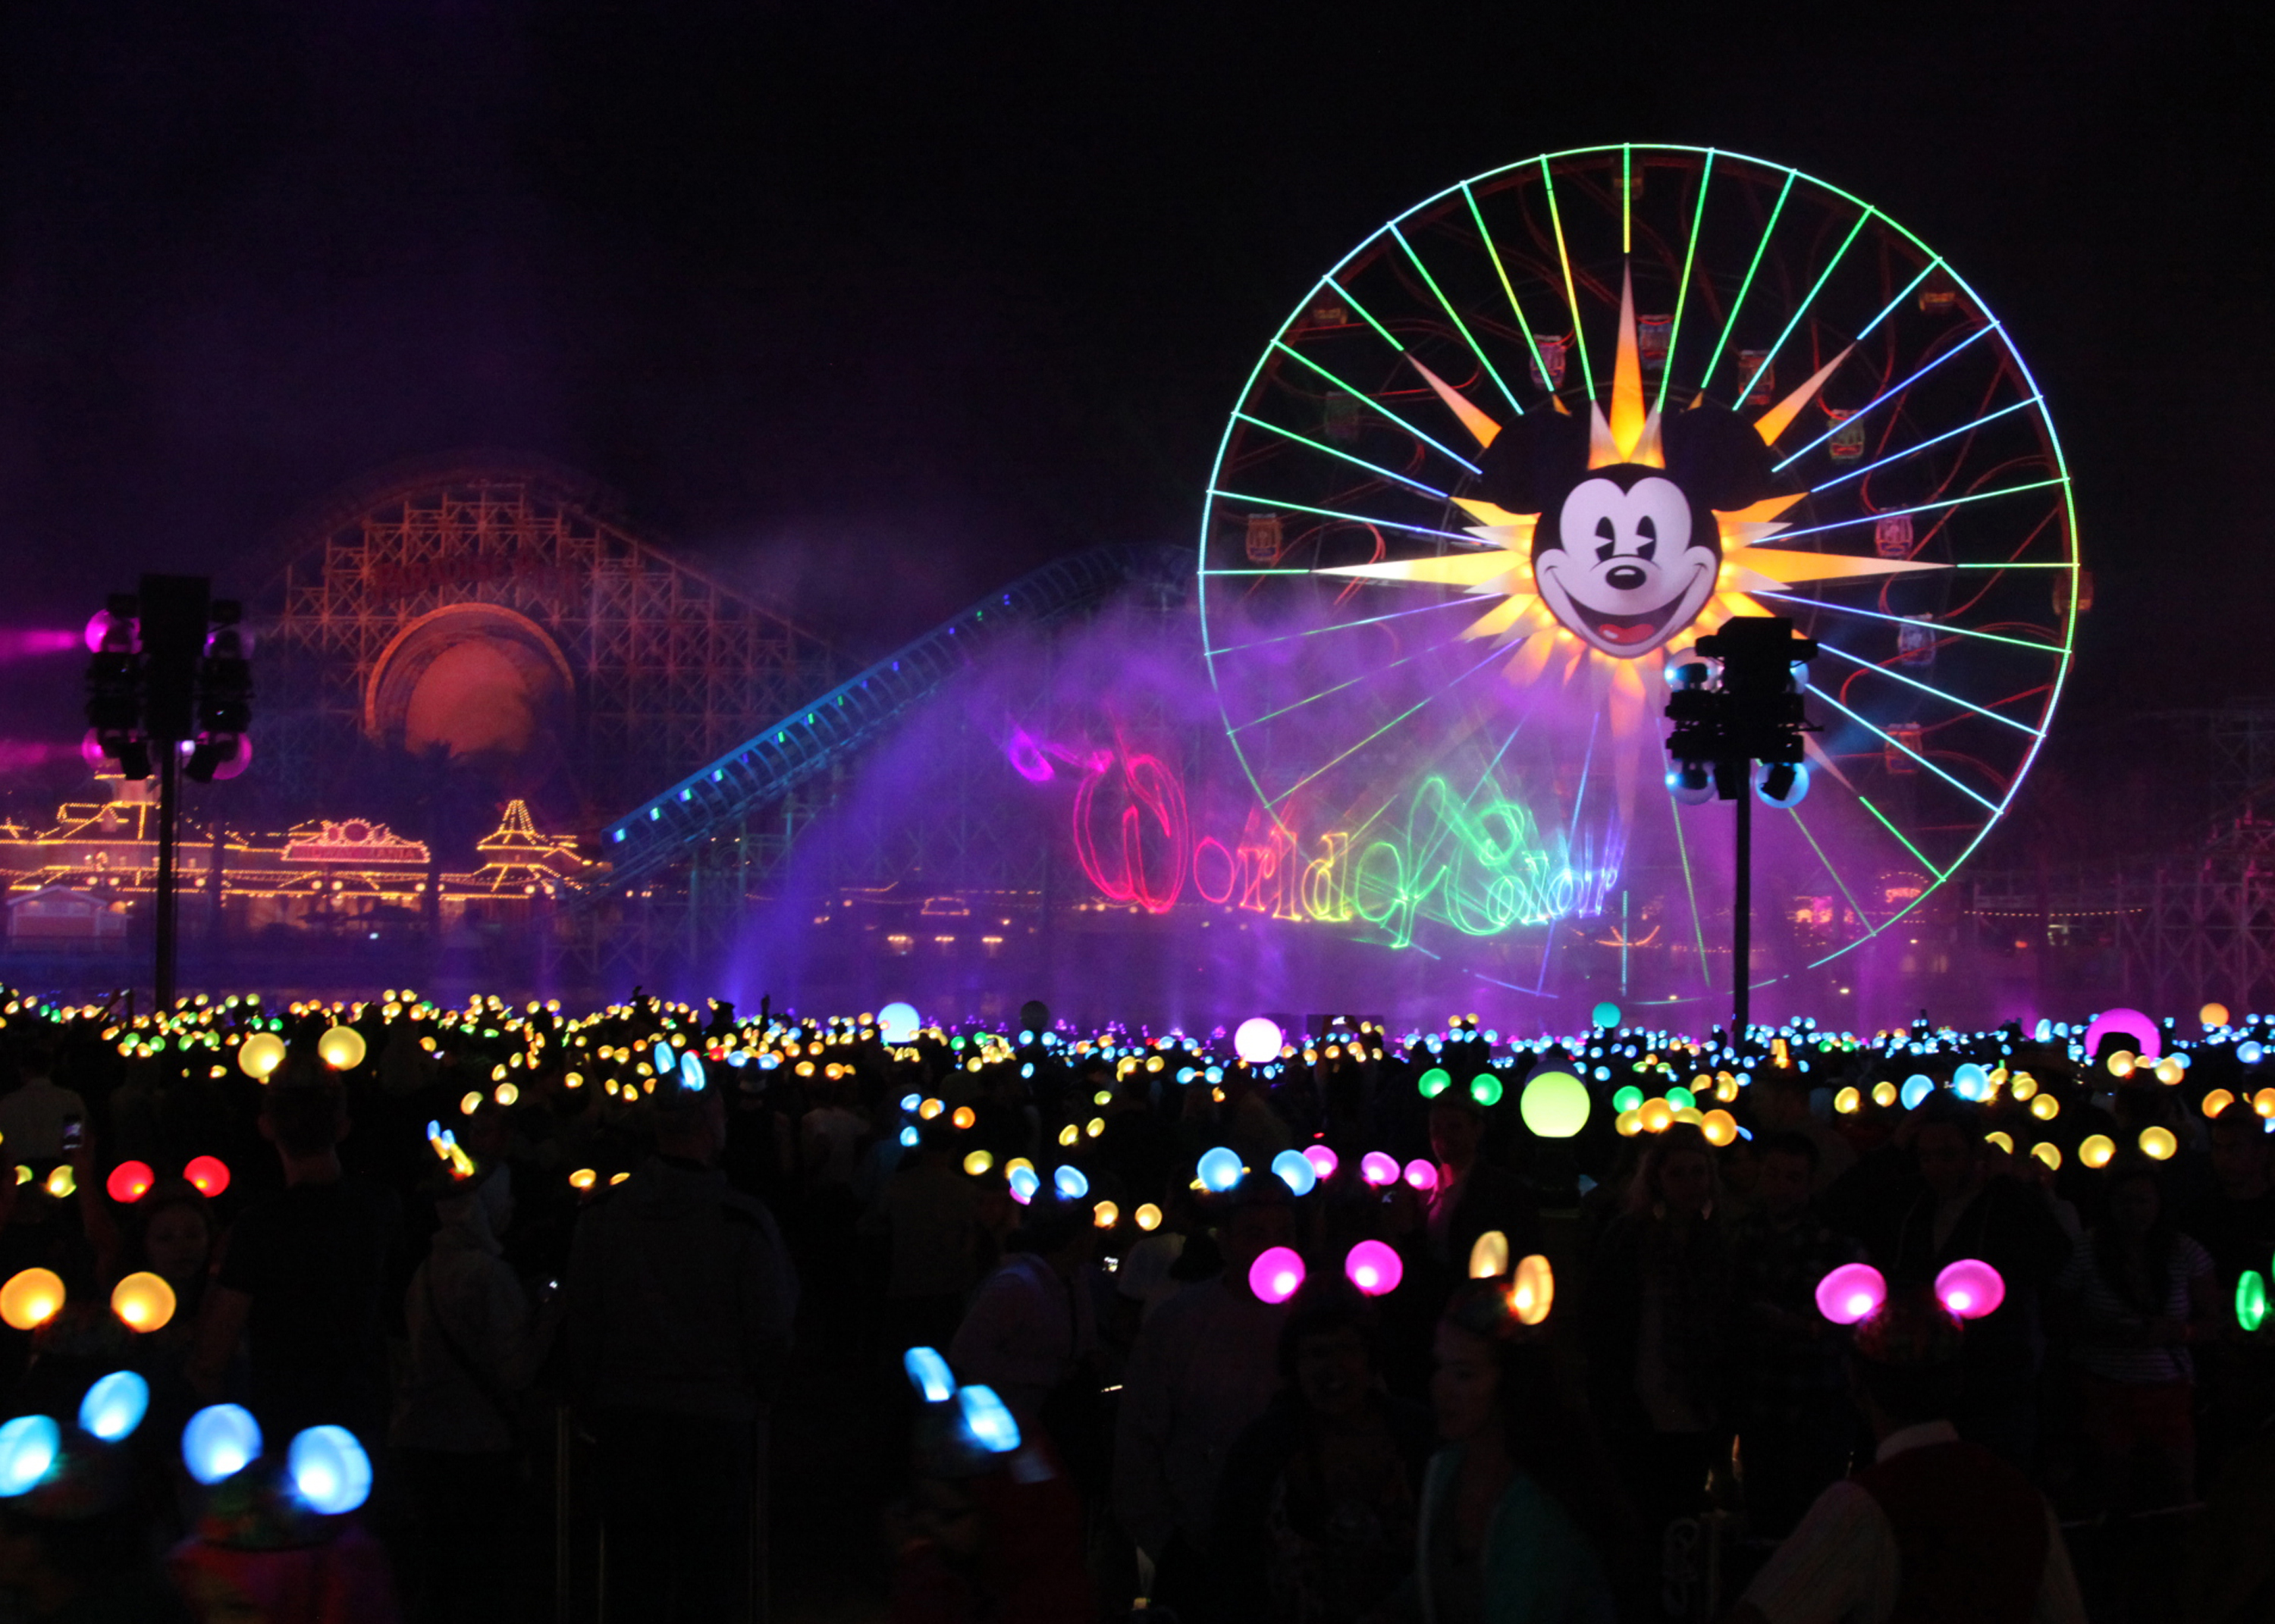 NEW! World of Color Show at Disneyland